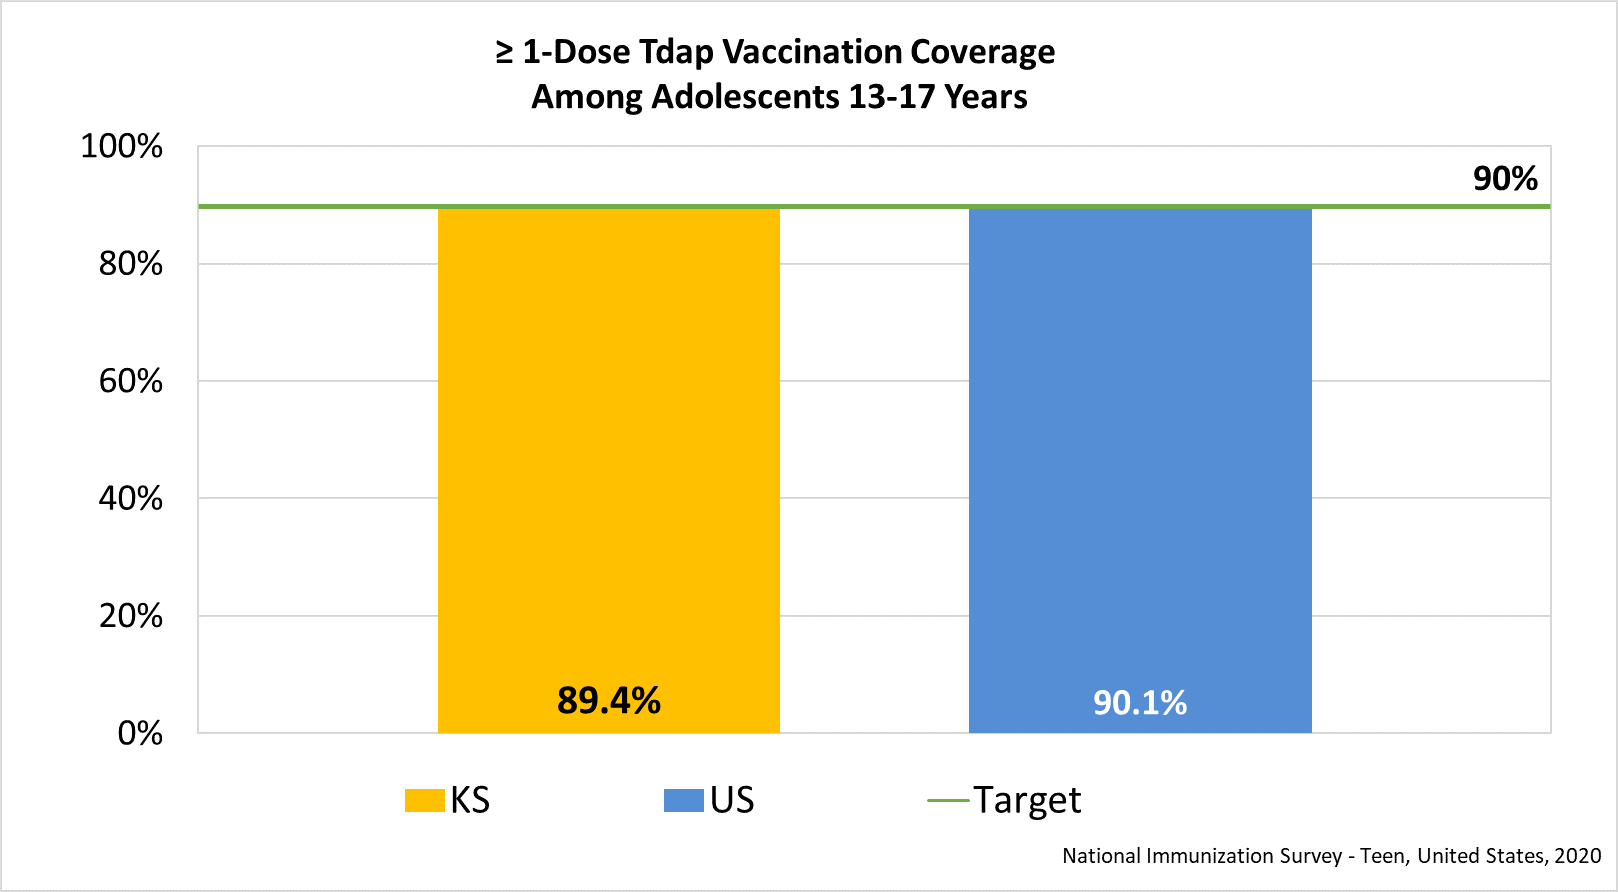 Estimated Tdap Vaccination Coverage Among Adolescents 13-17 Years